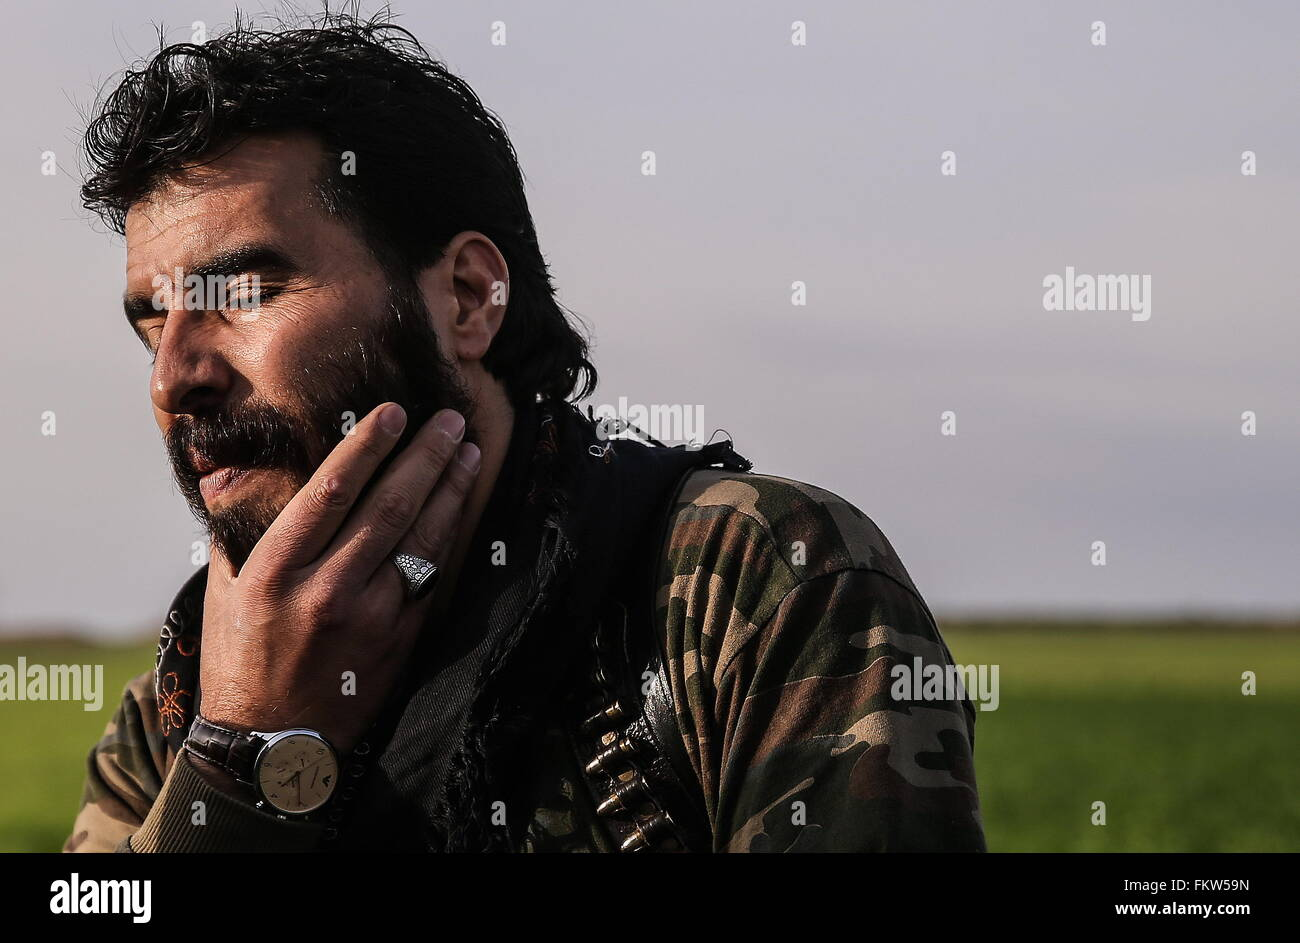 SYRIA. MARCH 10, 2016. Abu Juma, leader of Jaysh al-Thuwar, near the town of Azaz. Jaysh al-Thuwar, or the ArmyStock Photo